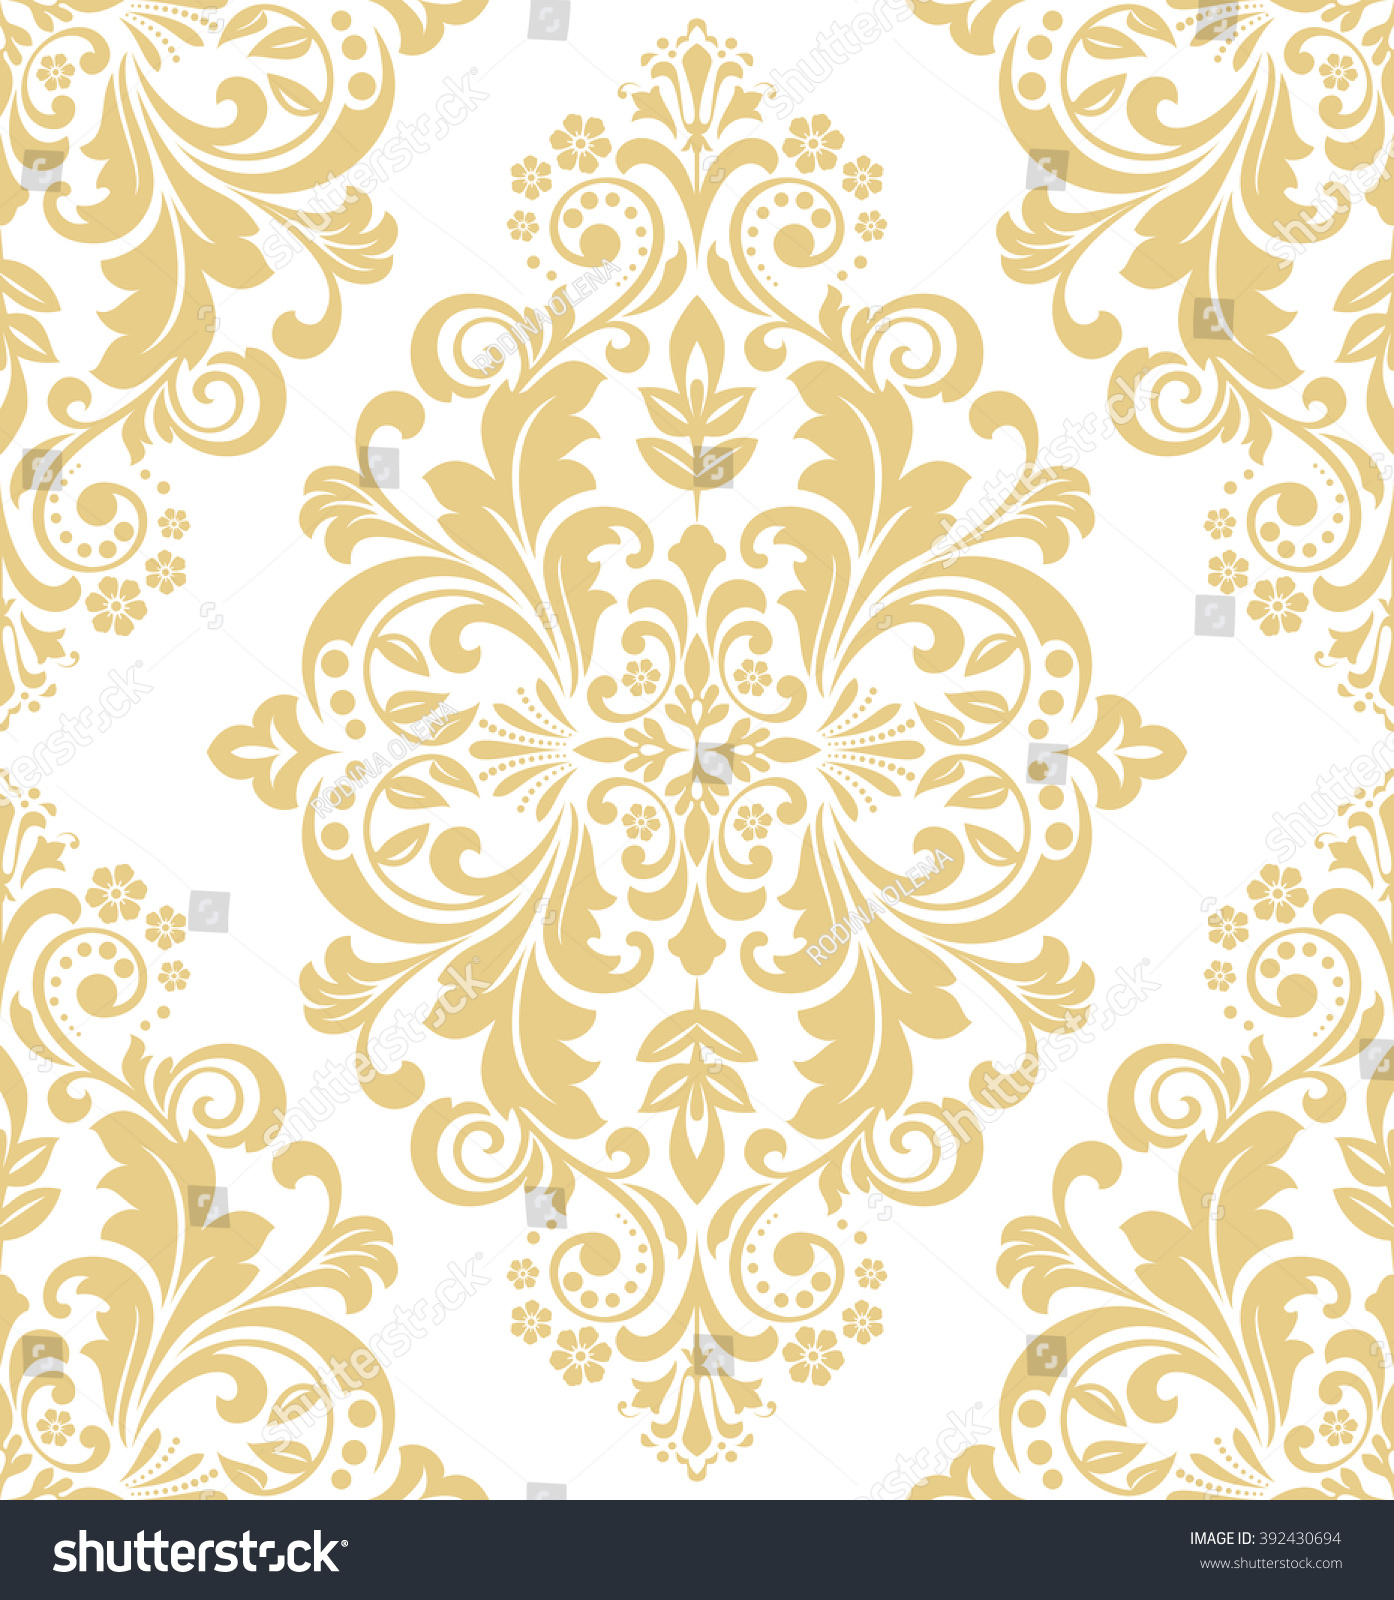 white and gold floral wallpaper - photo #26